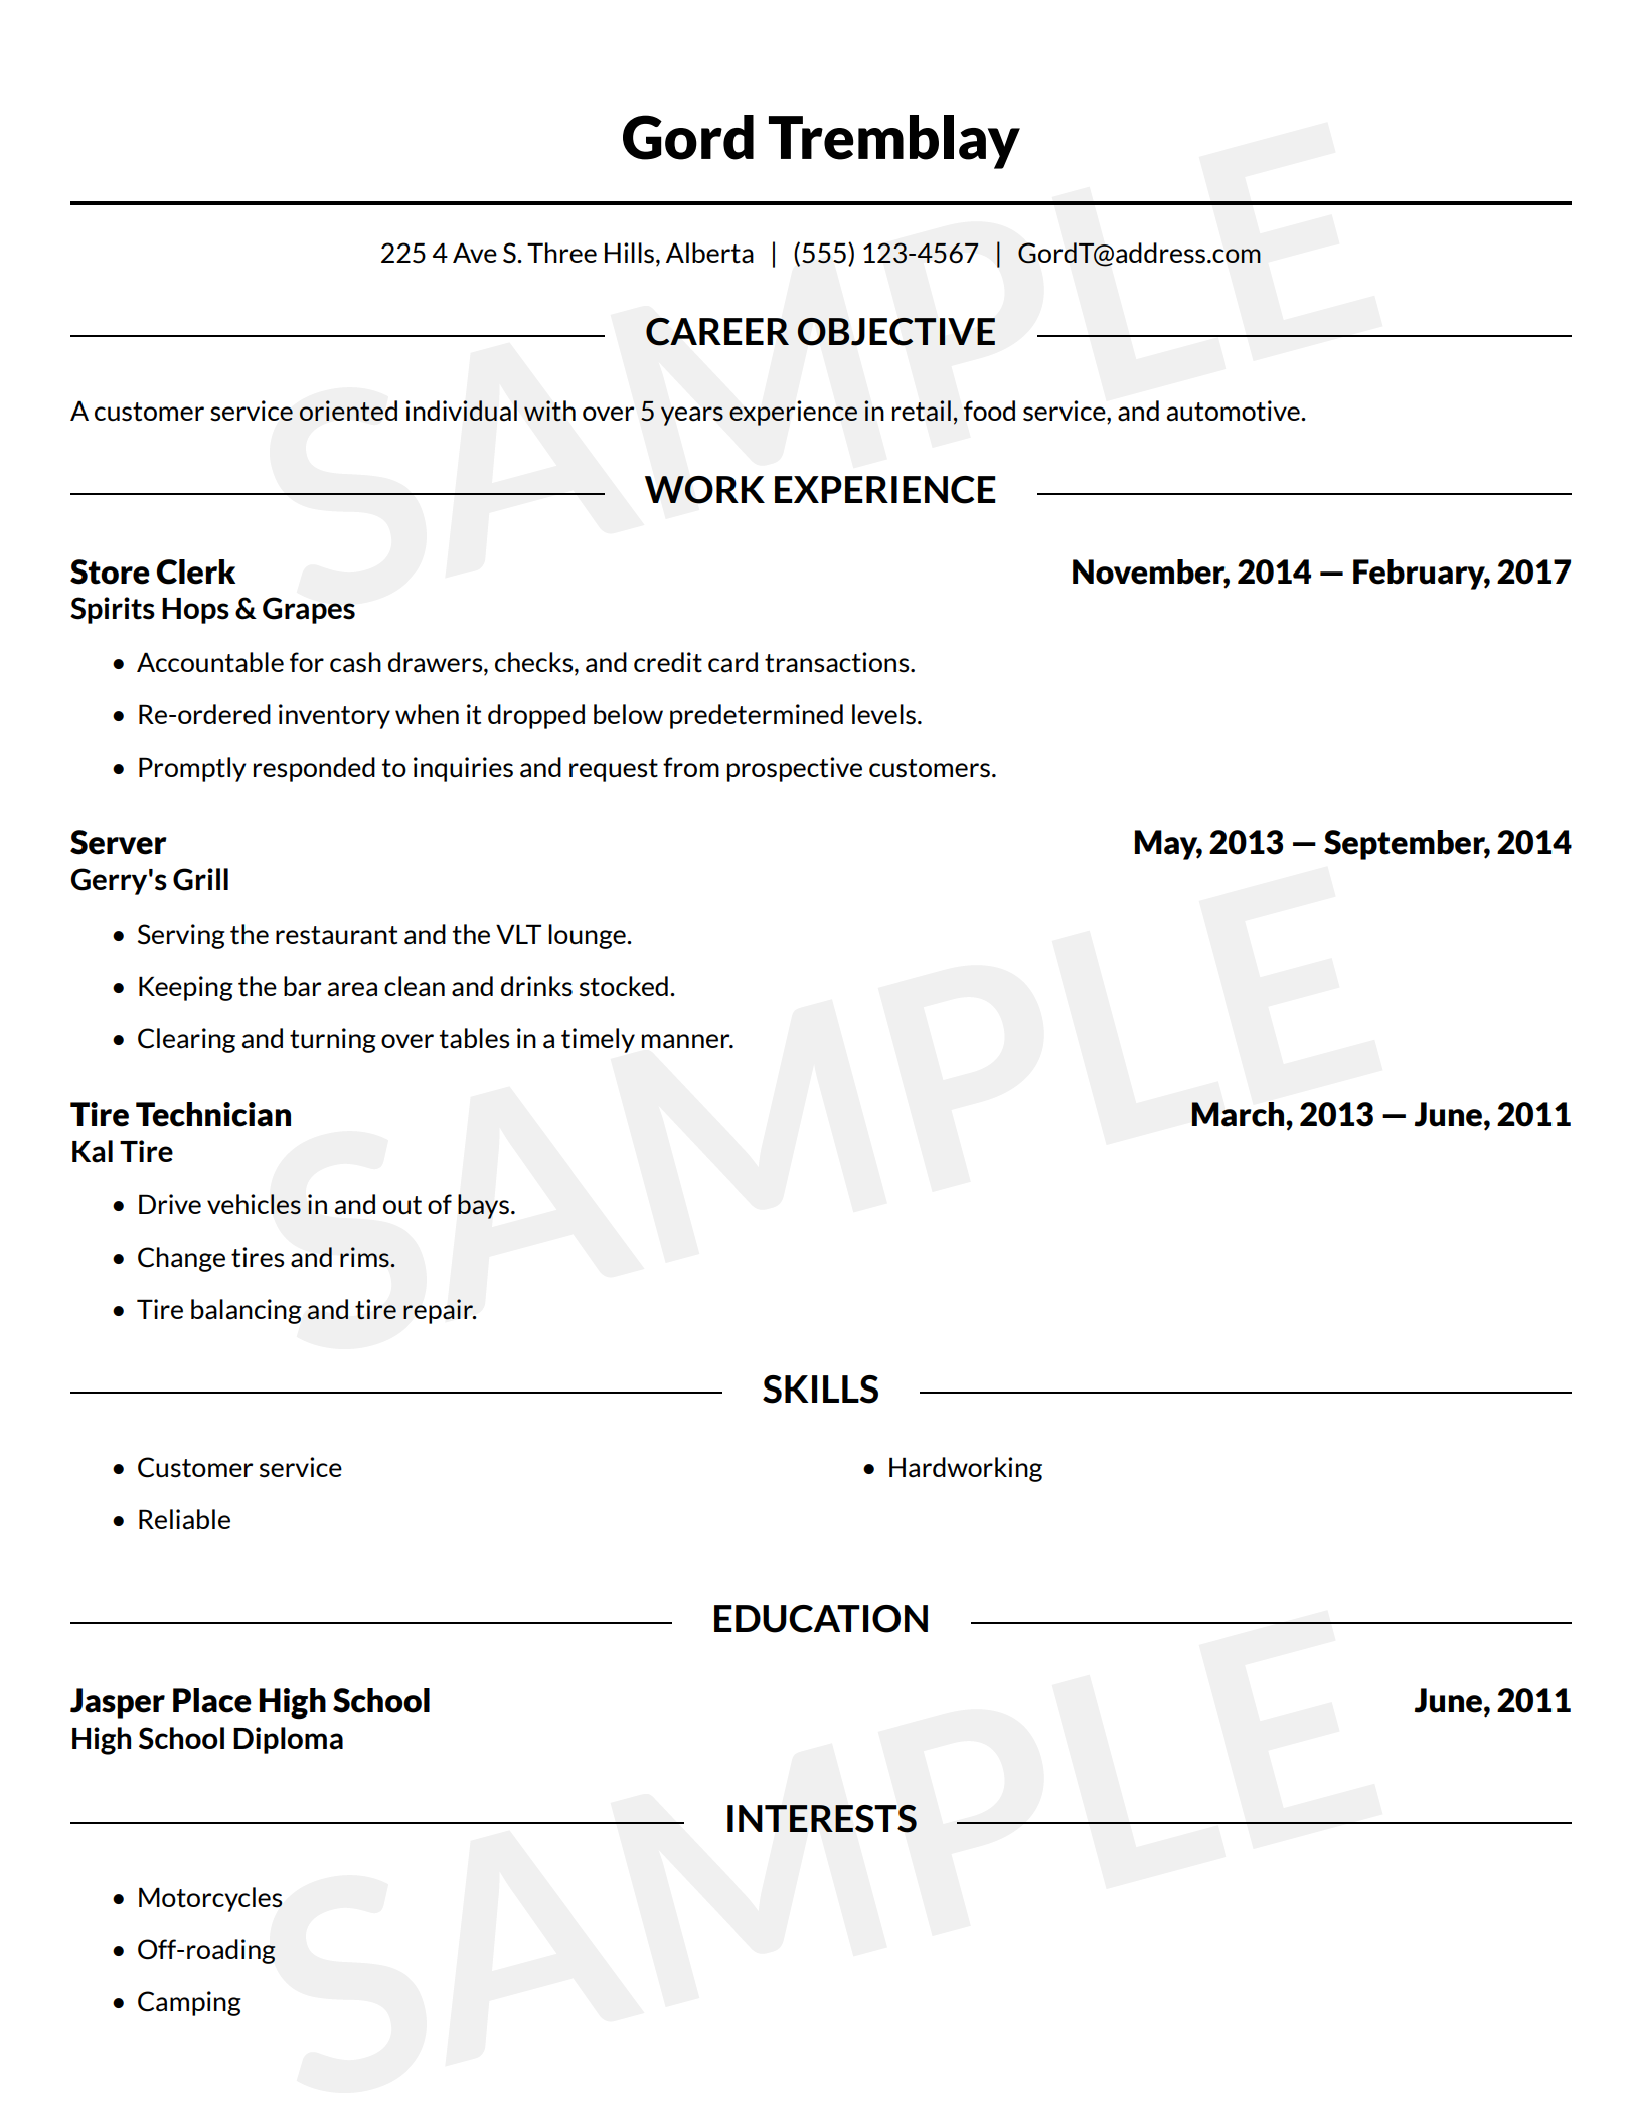 sample resume - Canadian Resume Builder